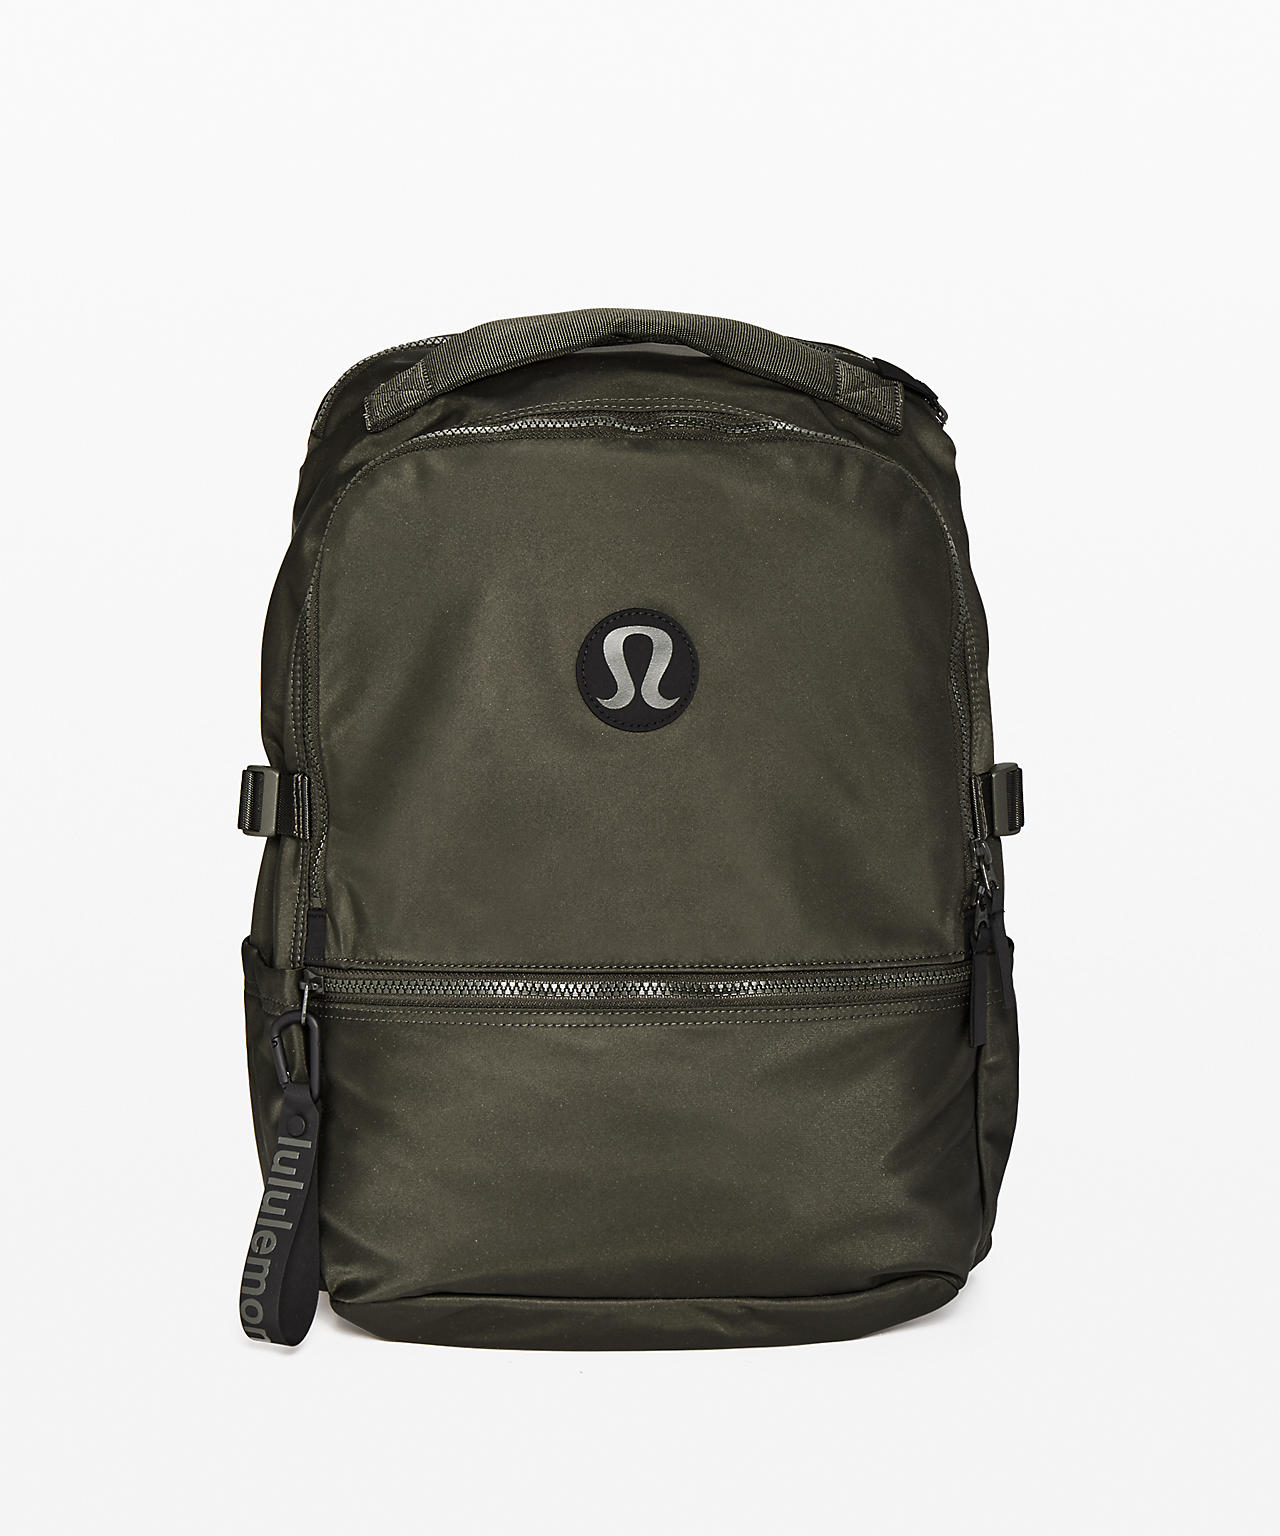 New Crew Backpack, Lululemon Upload